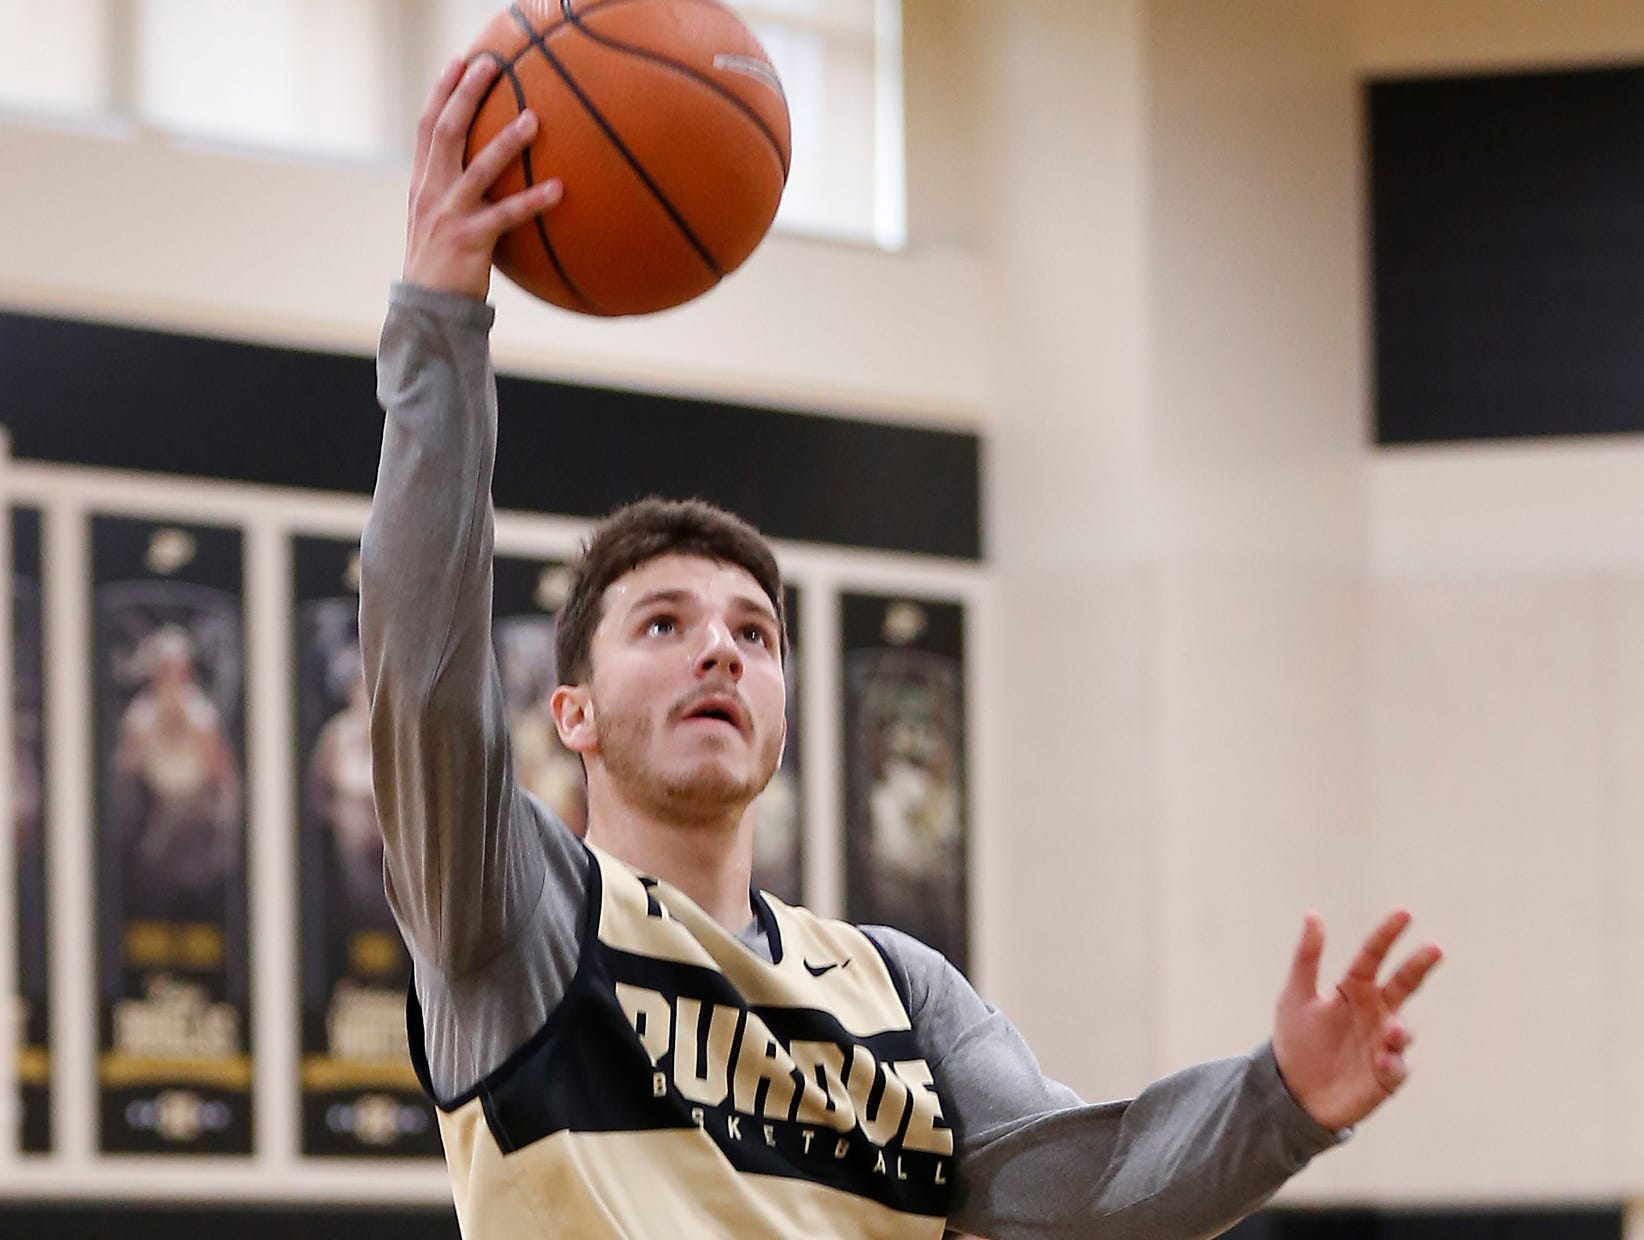 Tommy Luce with a layup during the first official practice of the season for Purdue men's basketball Tuesday, September 25, 2018, at Cardinal Court in Mackey Arena.